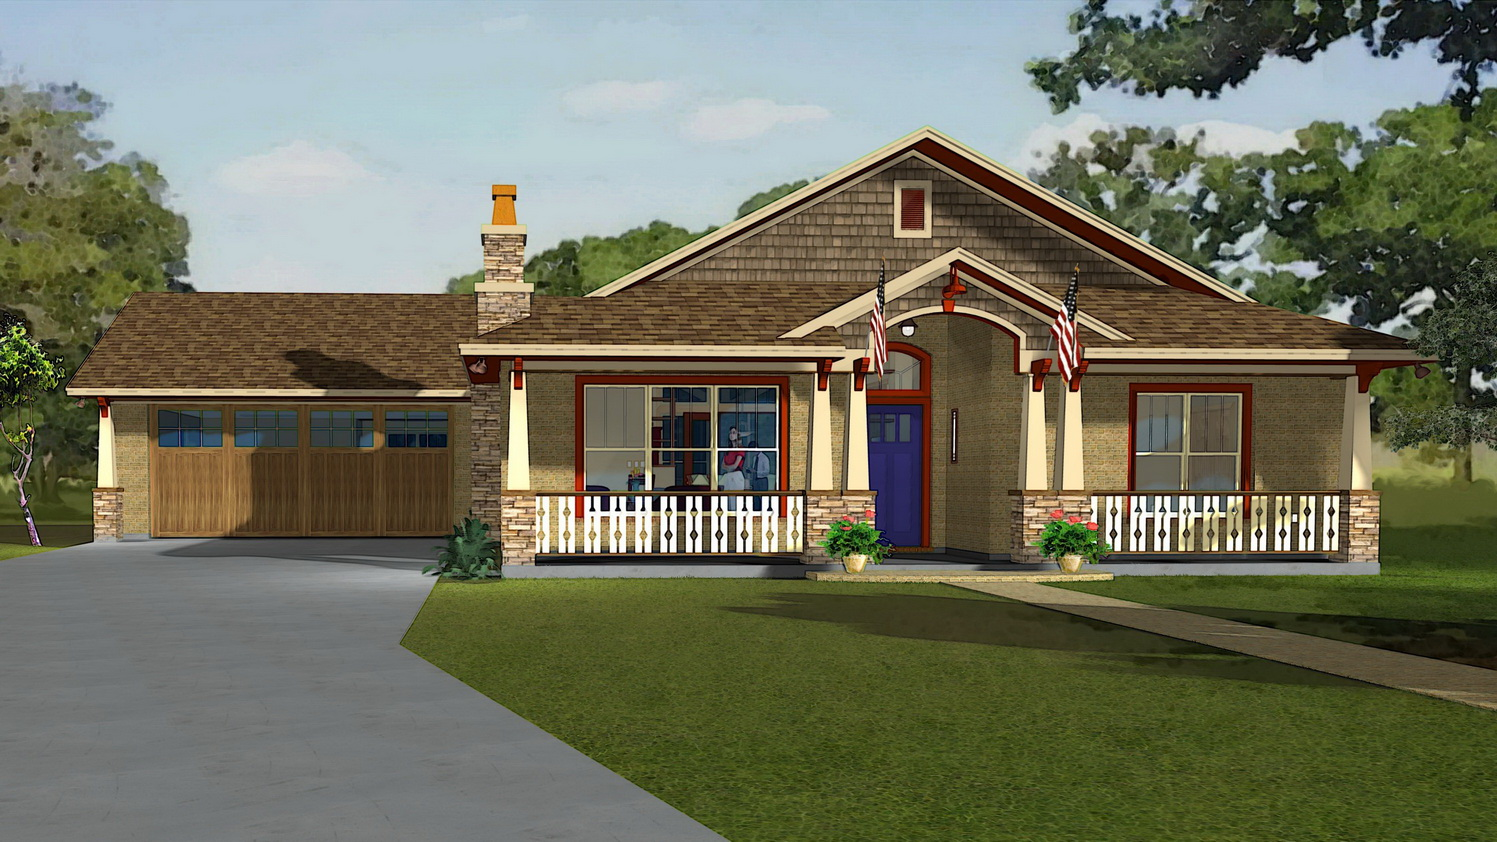 Old craftsman style bungalow home plans color small house for Old style craftsman house plans